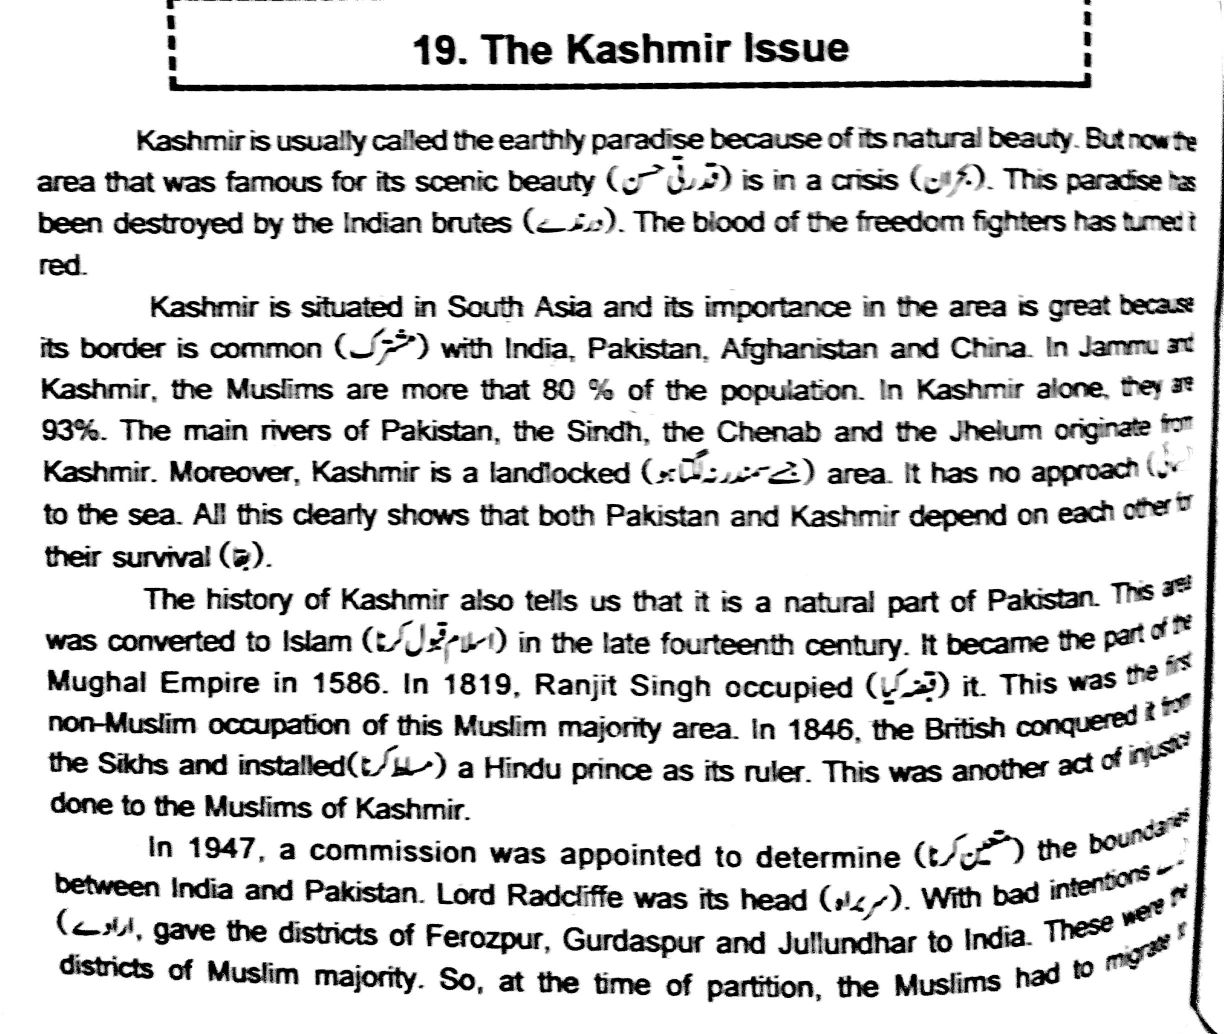 essay on kashmir essay on kashmir pros of using paper writing the kashmir issue essay in english for students honey notesshort essay on kashmir problem kashmir issue